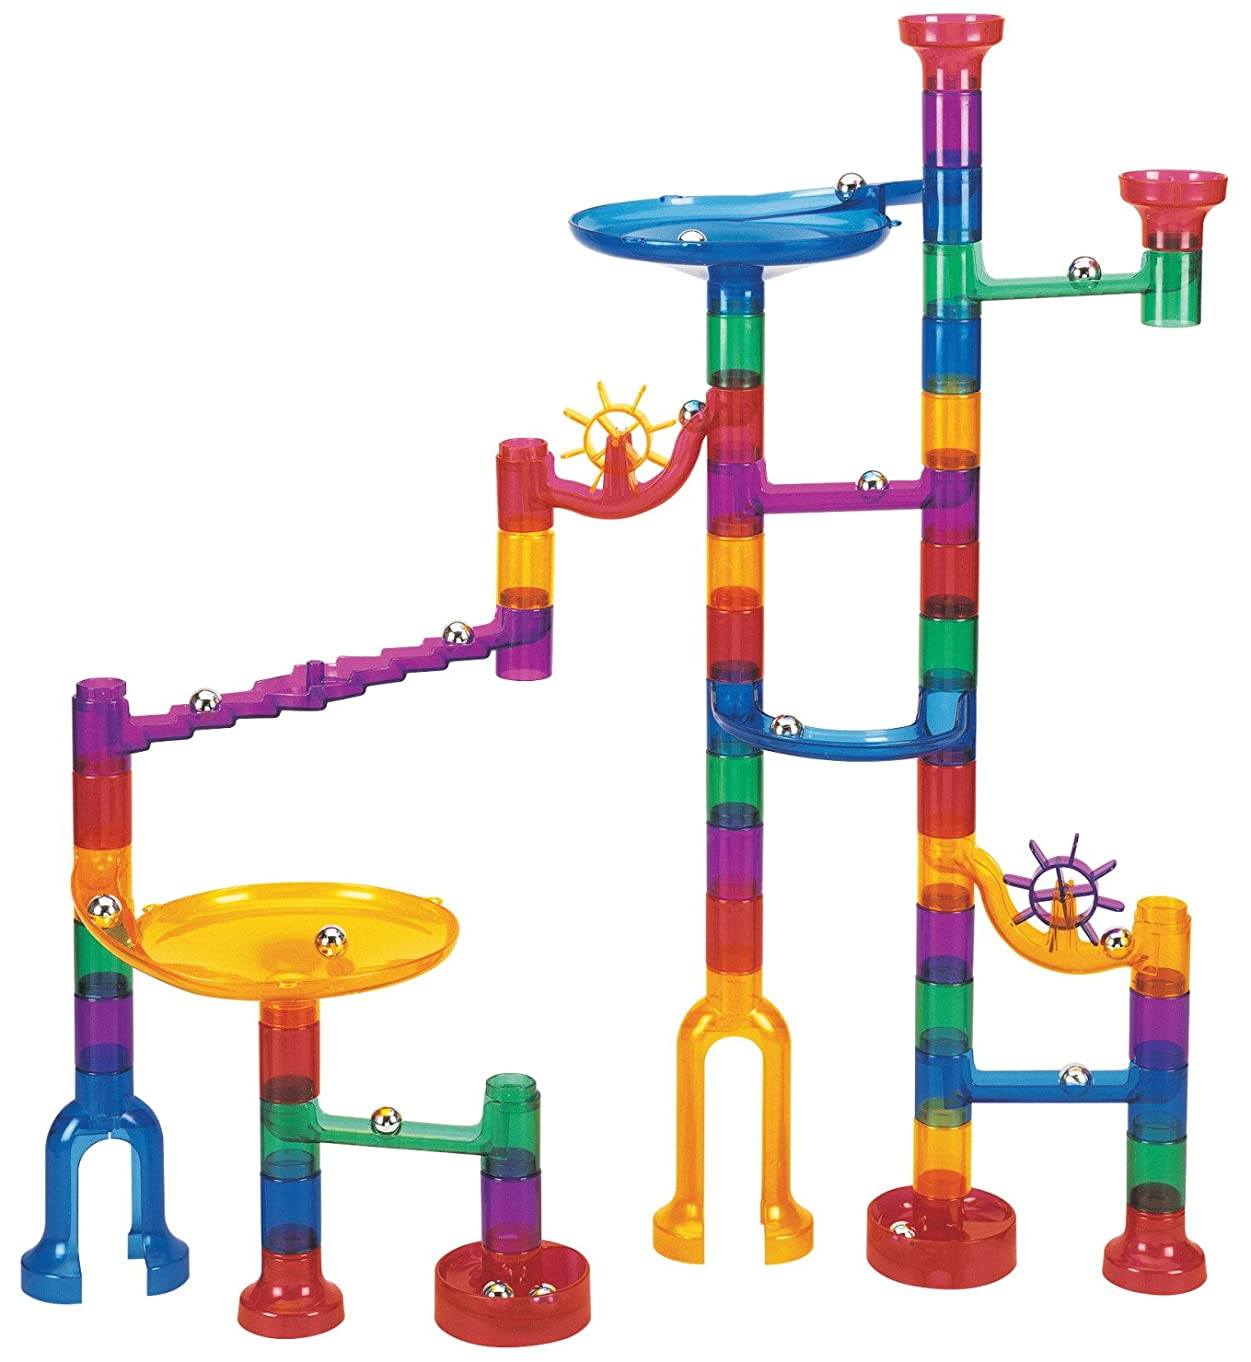 Edushape 805843 Marble Run, 48 Piece, Transparent, 11